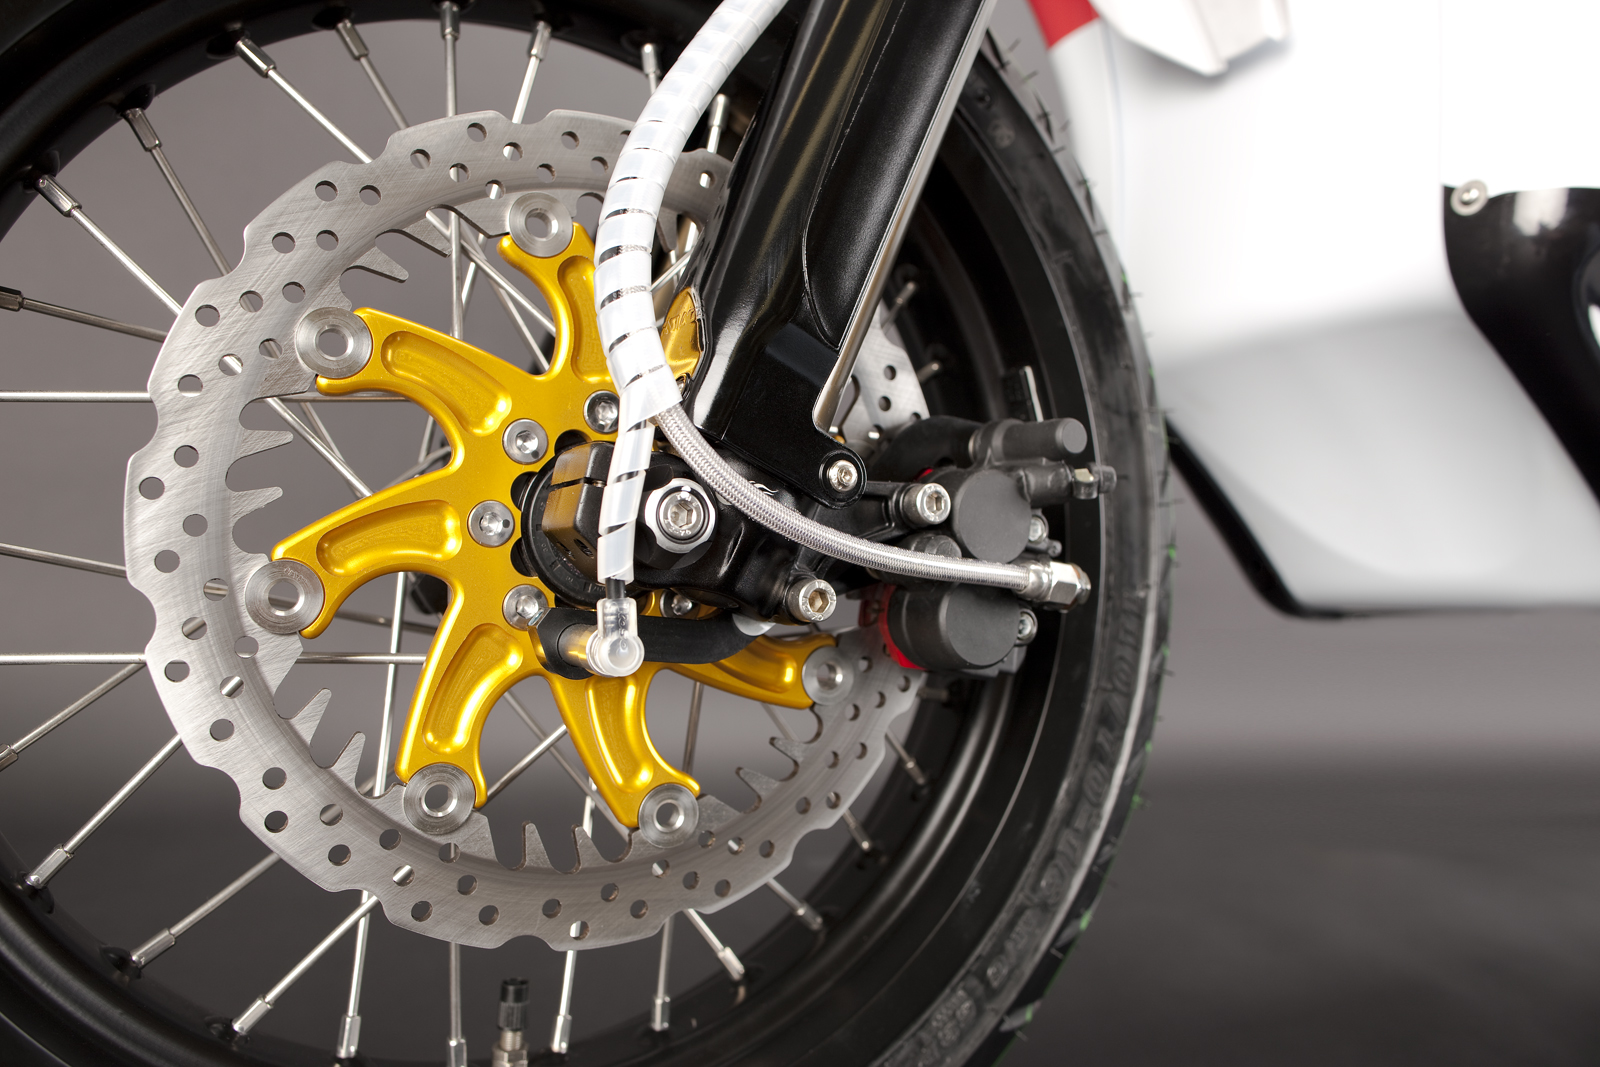 2010 Zero S Electric Motorcycle: Front Brake